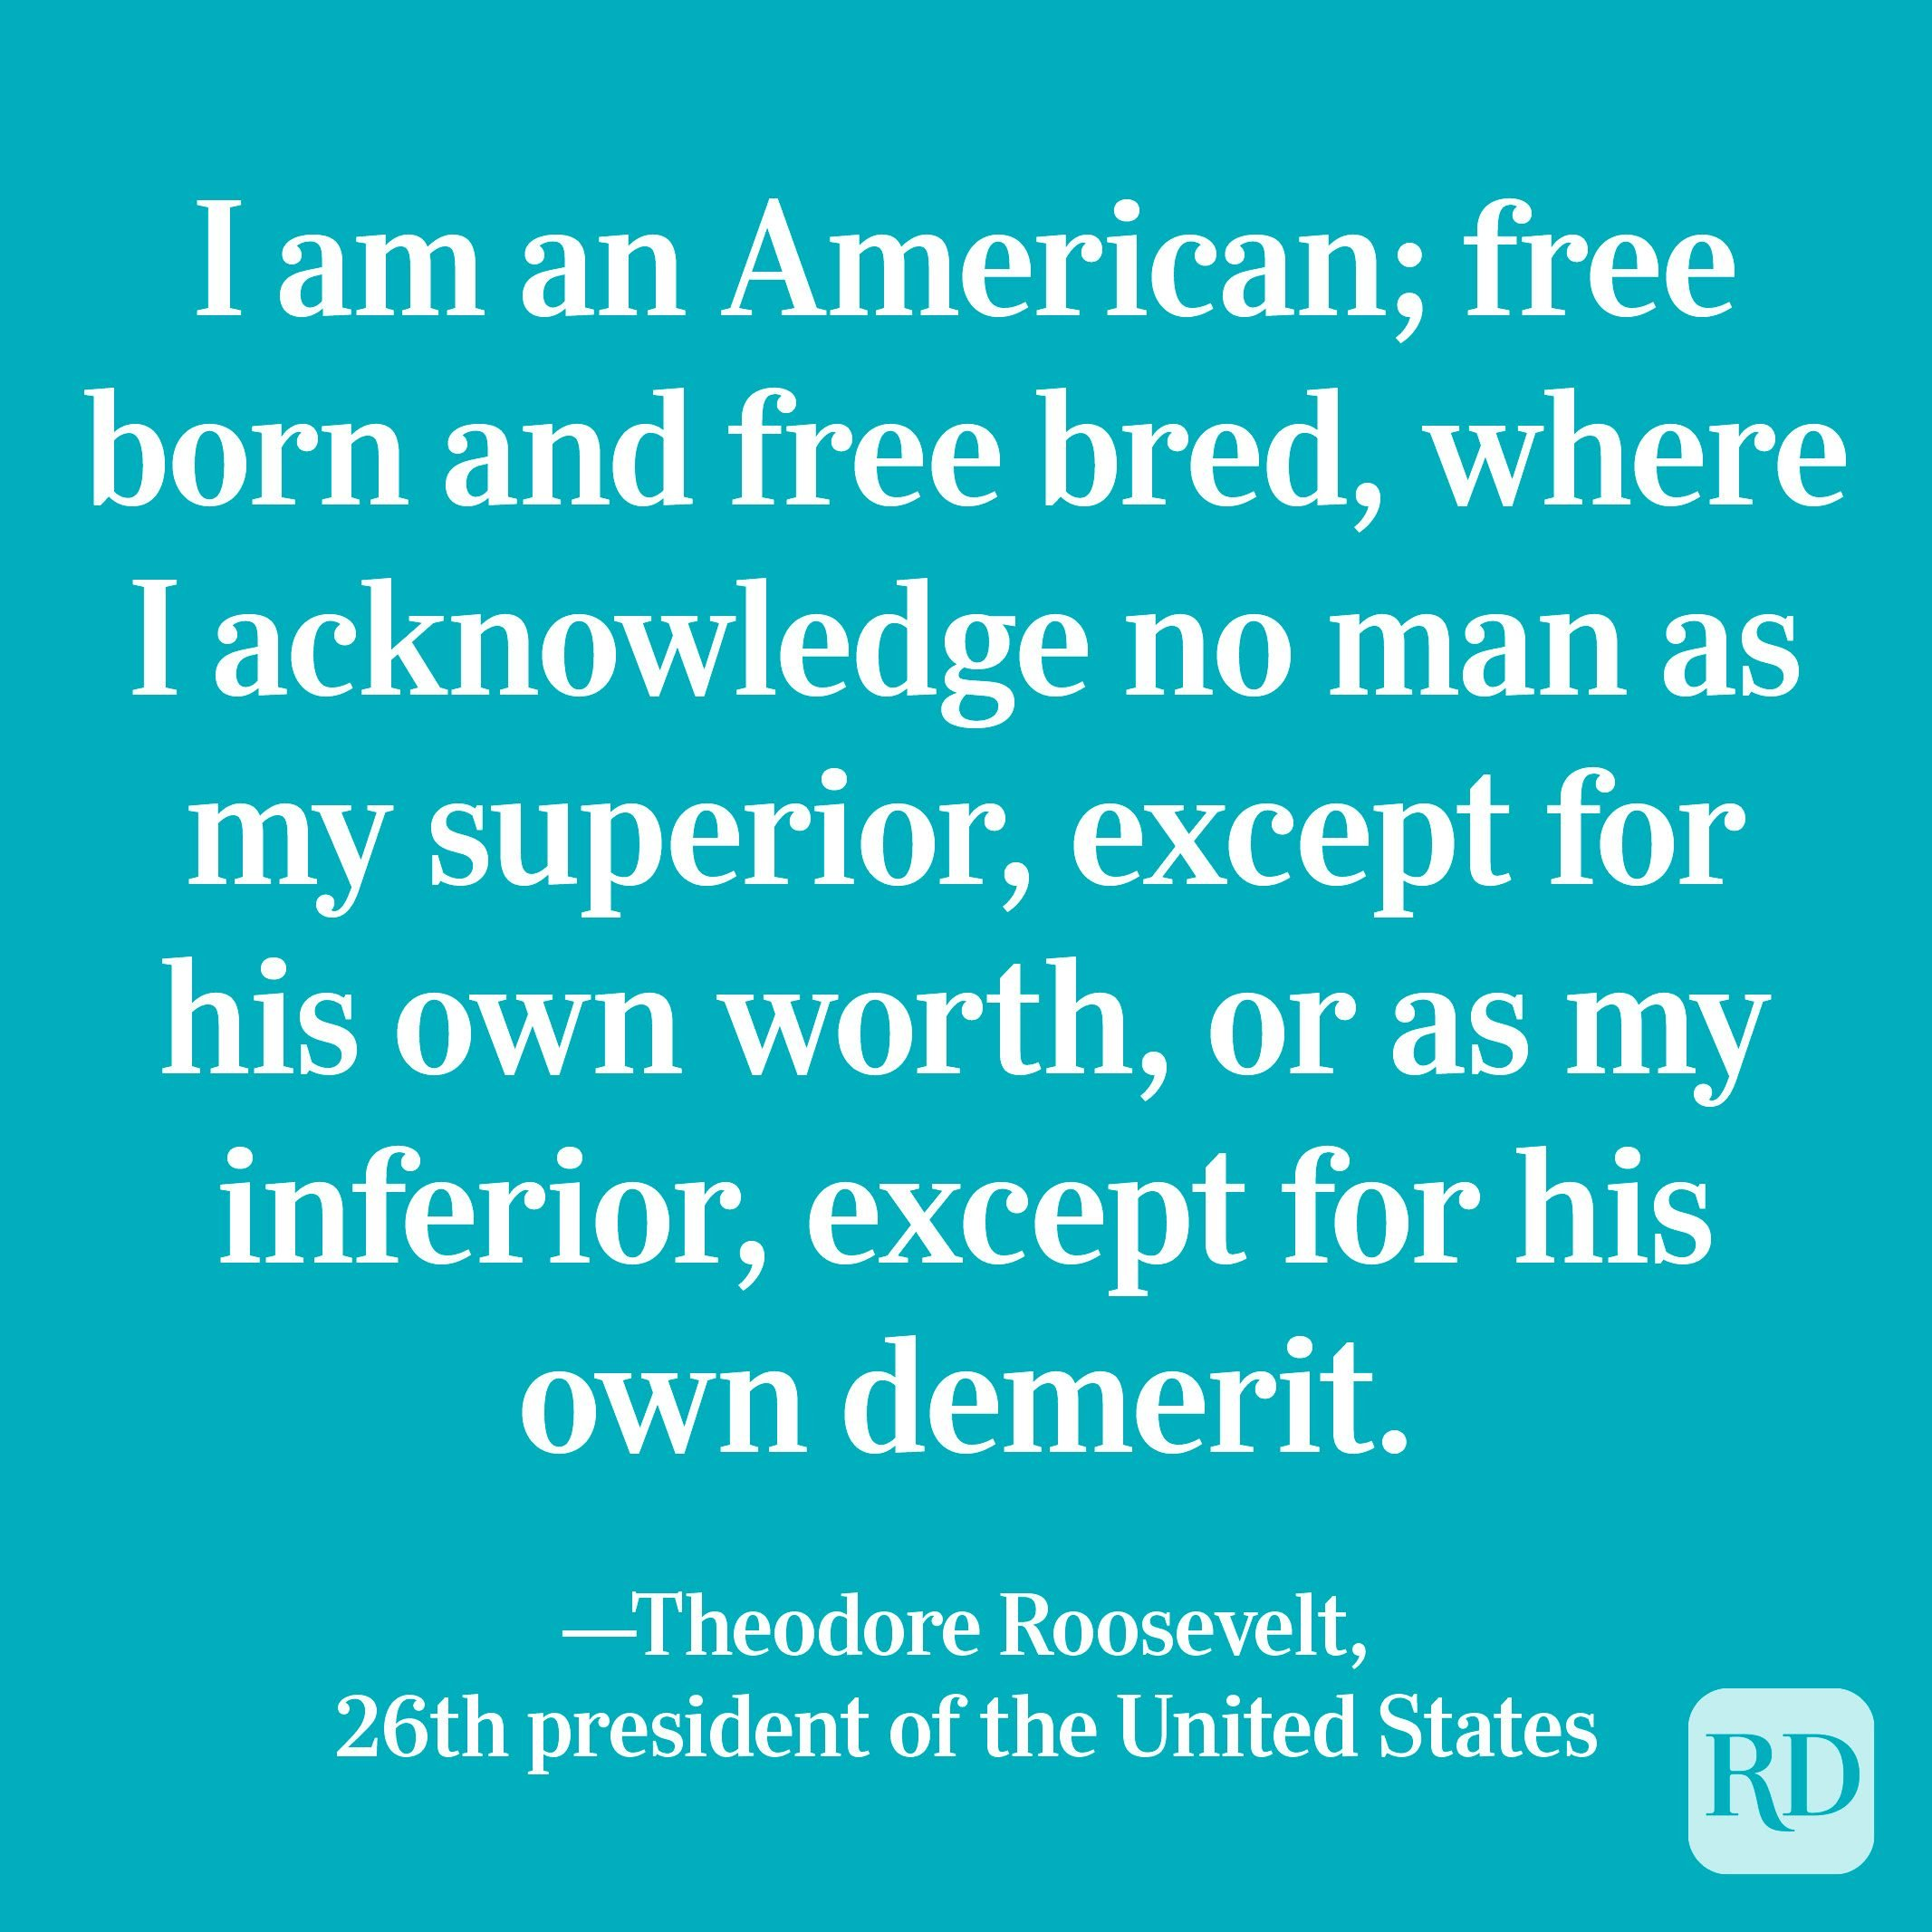 """""""I am an American; free born and free bred, where I acknowledge no man as my superior, except for his own worth, or as my inferior, except for his own demerit."""" —Theodore Roosevelt, 26th president of the United States"""